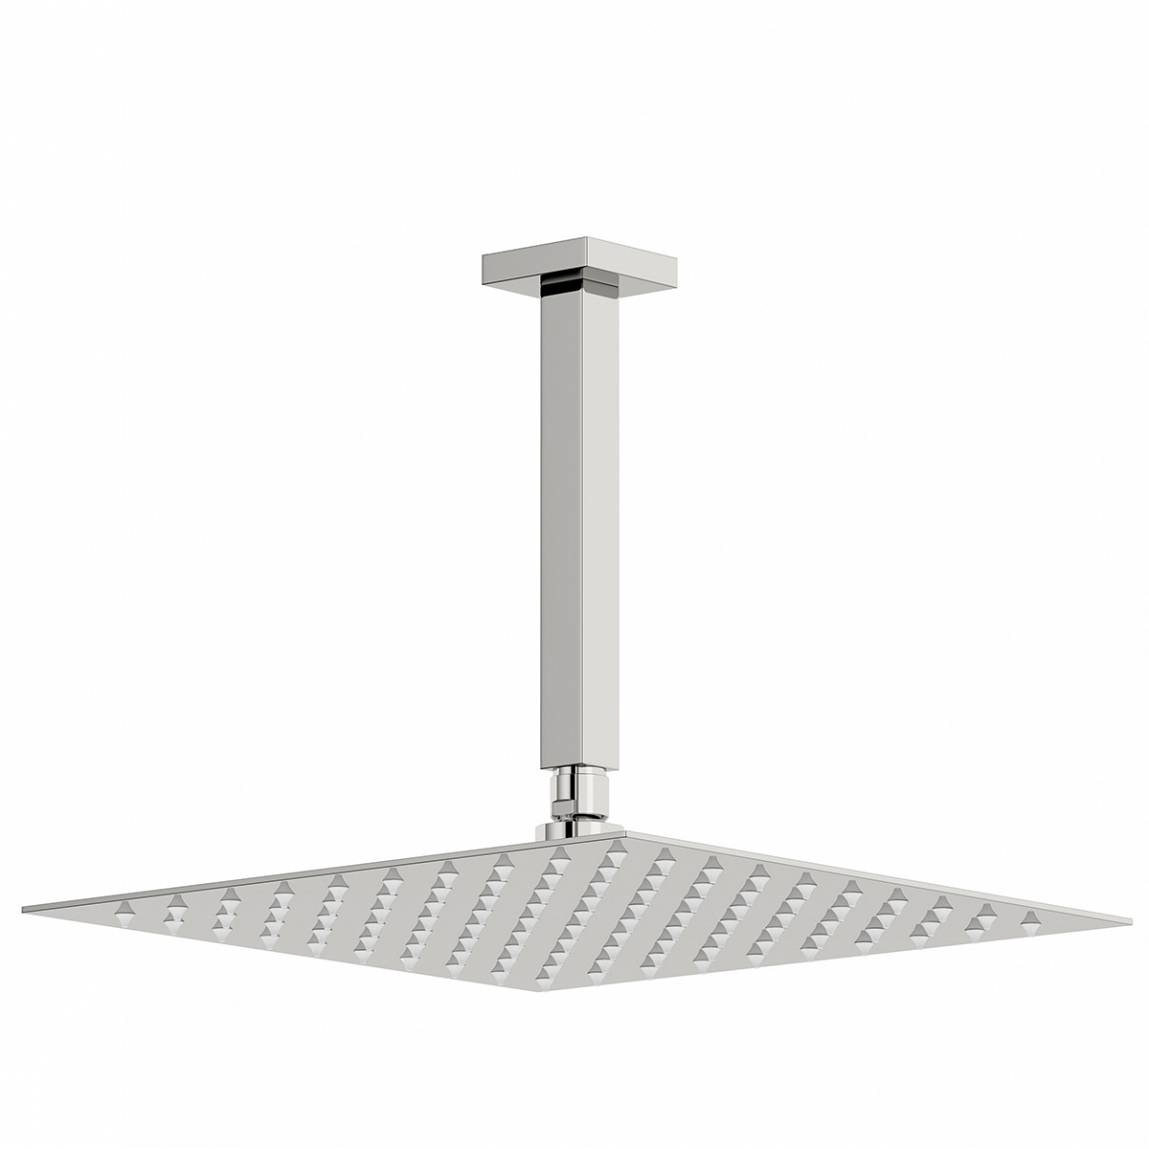 Image of Arcus 300mm Shower Head & Square Ceiling Arm